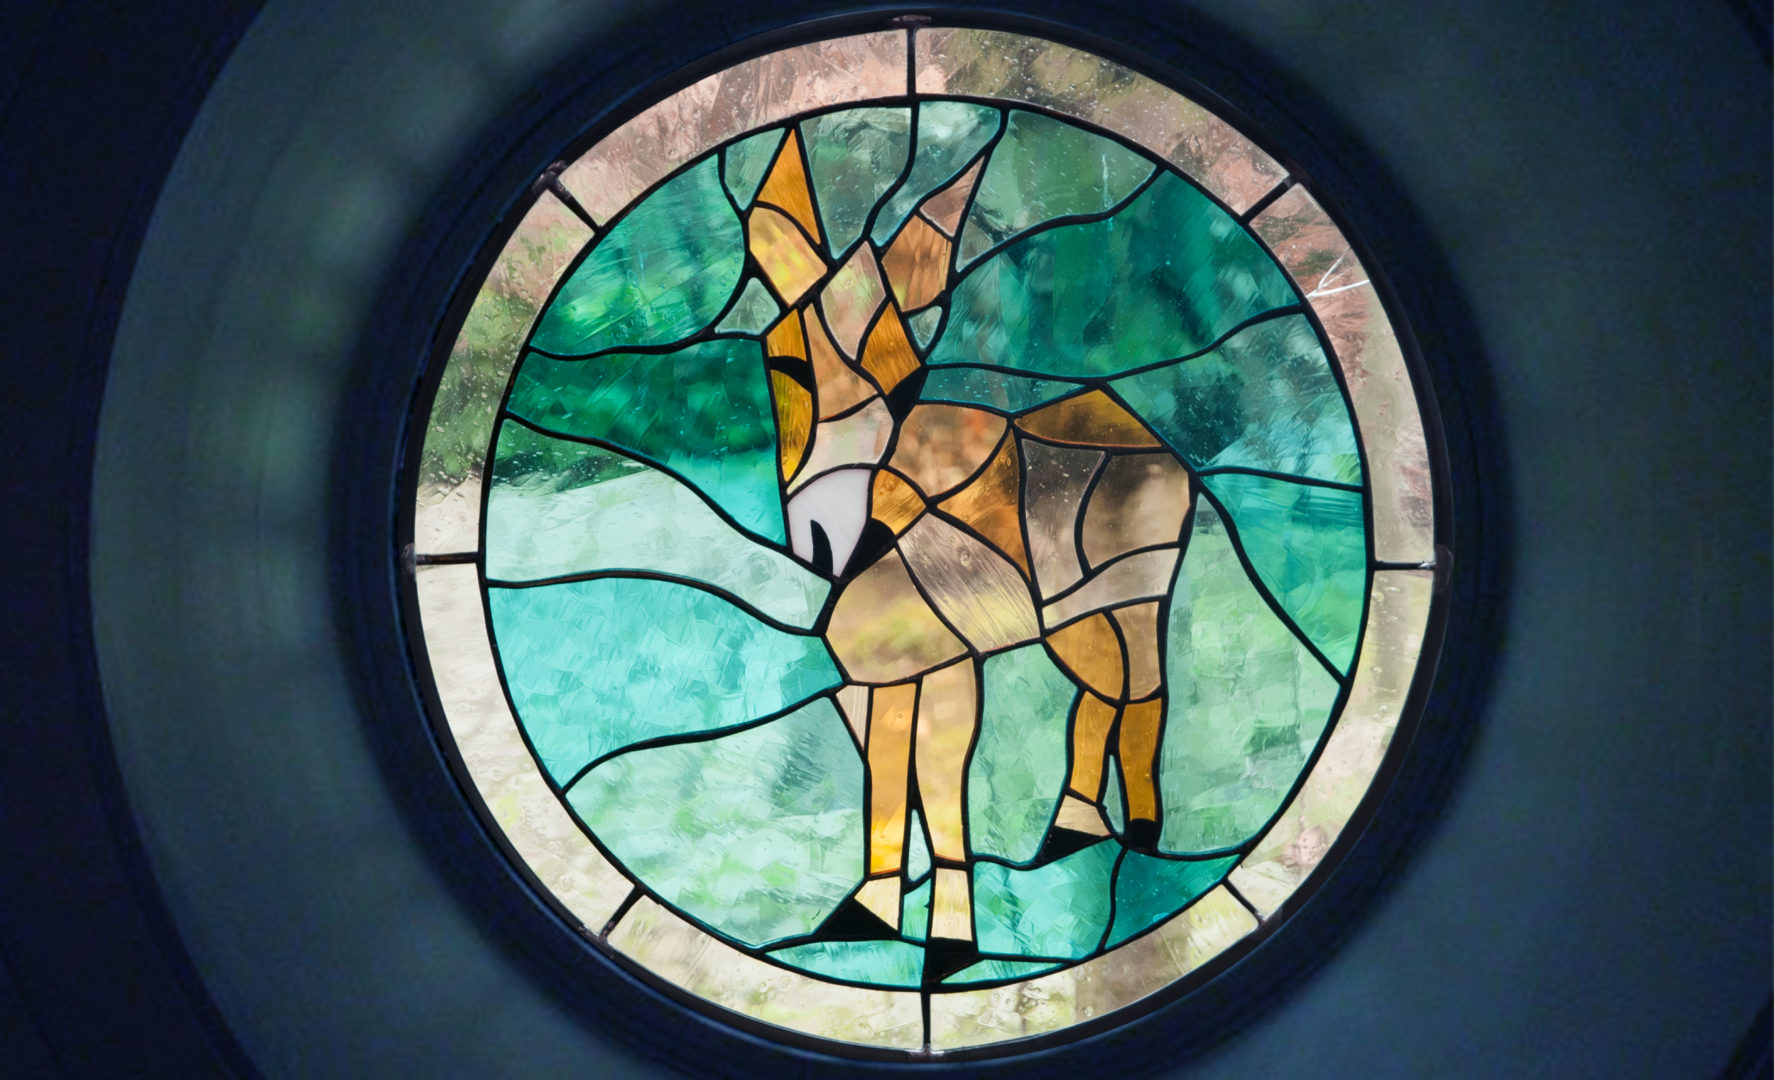 Strange Donkey in stained glass